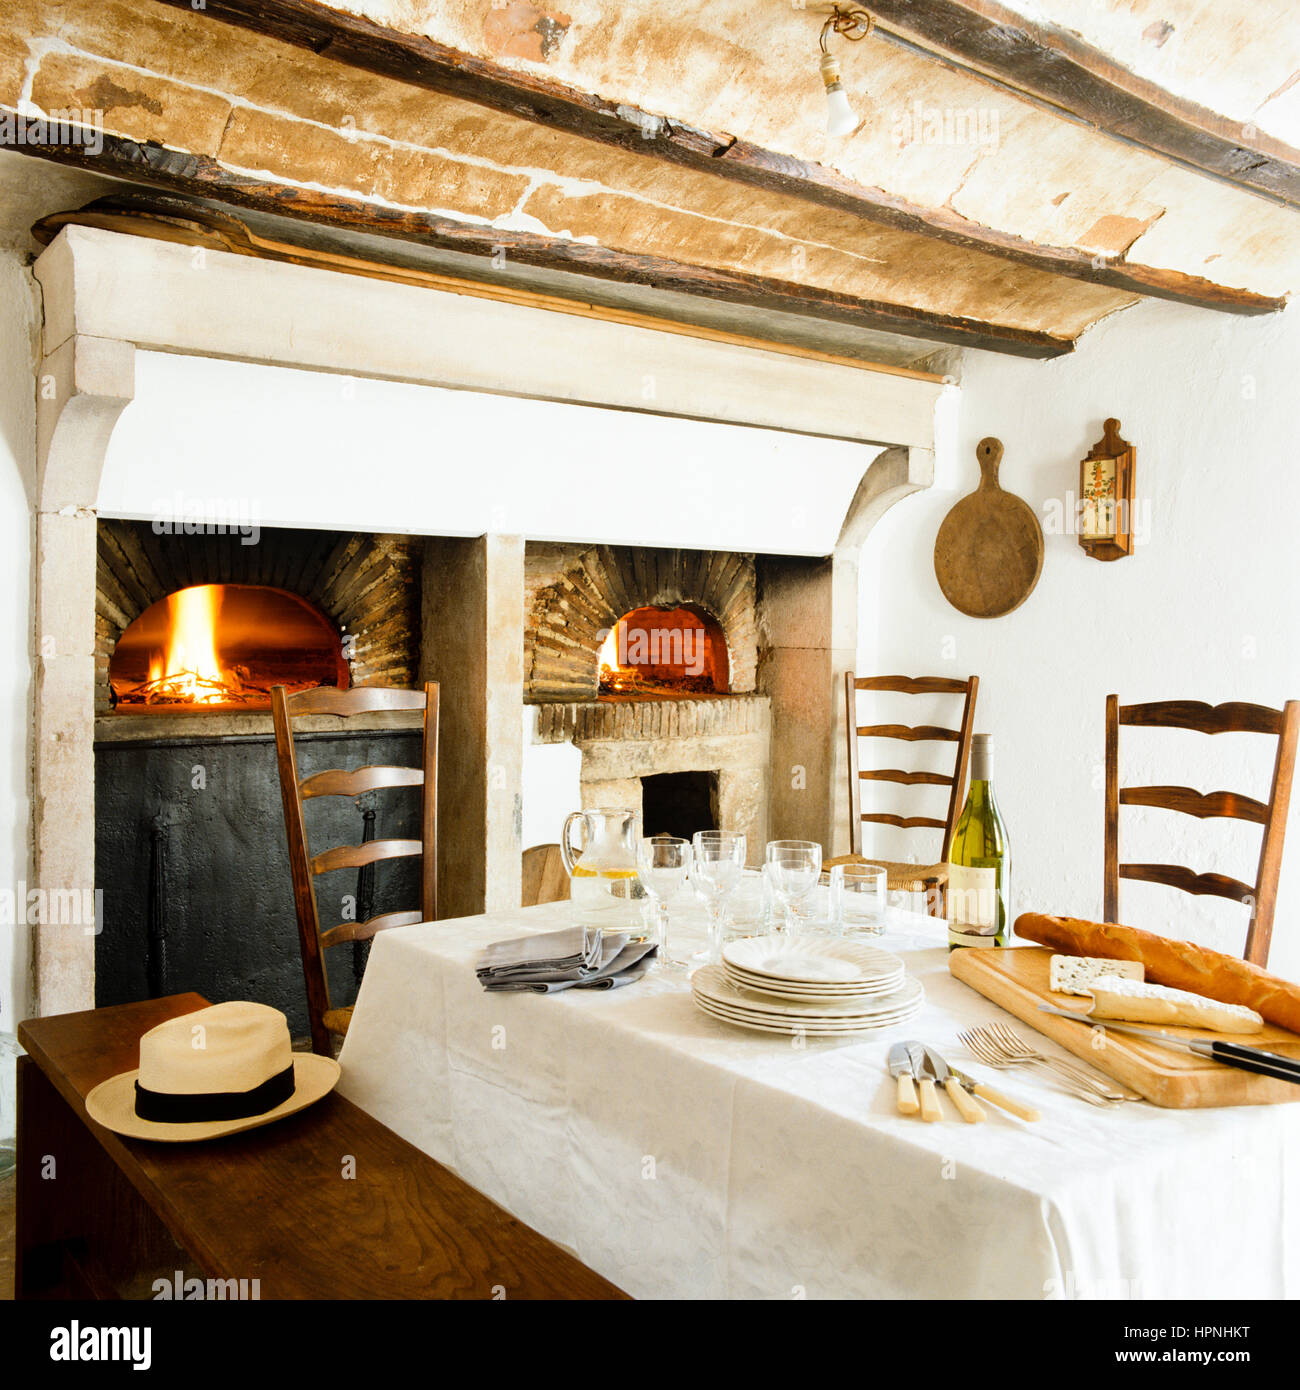 A dining table by ovens. - Stock Image